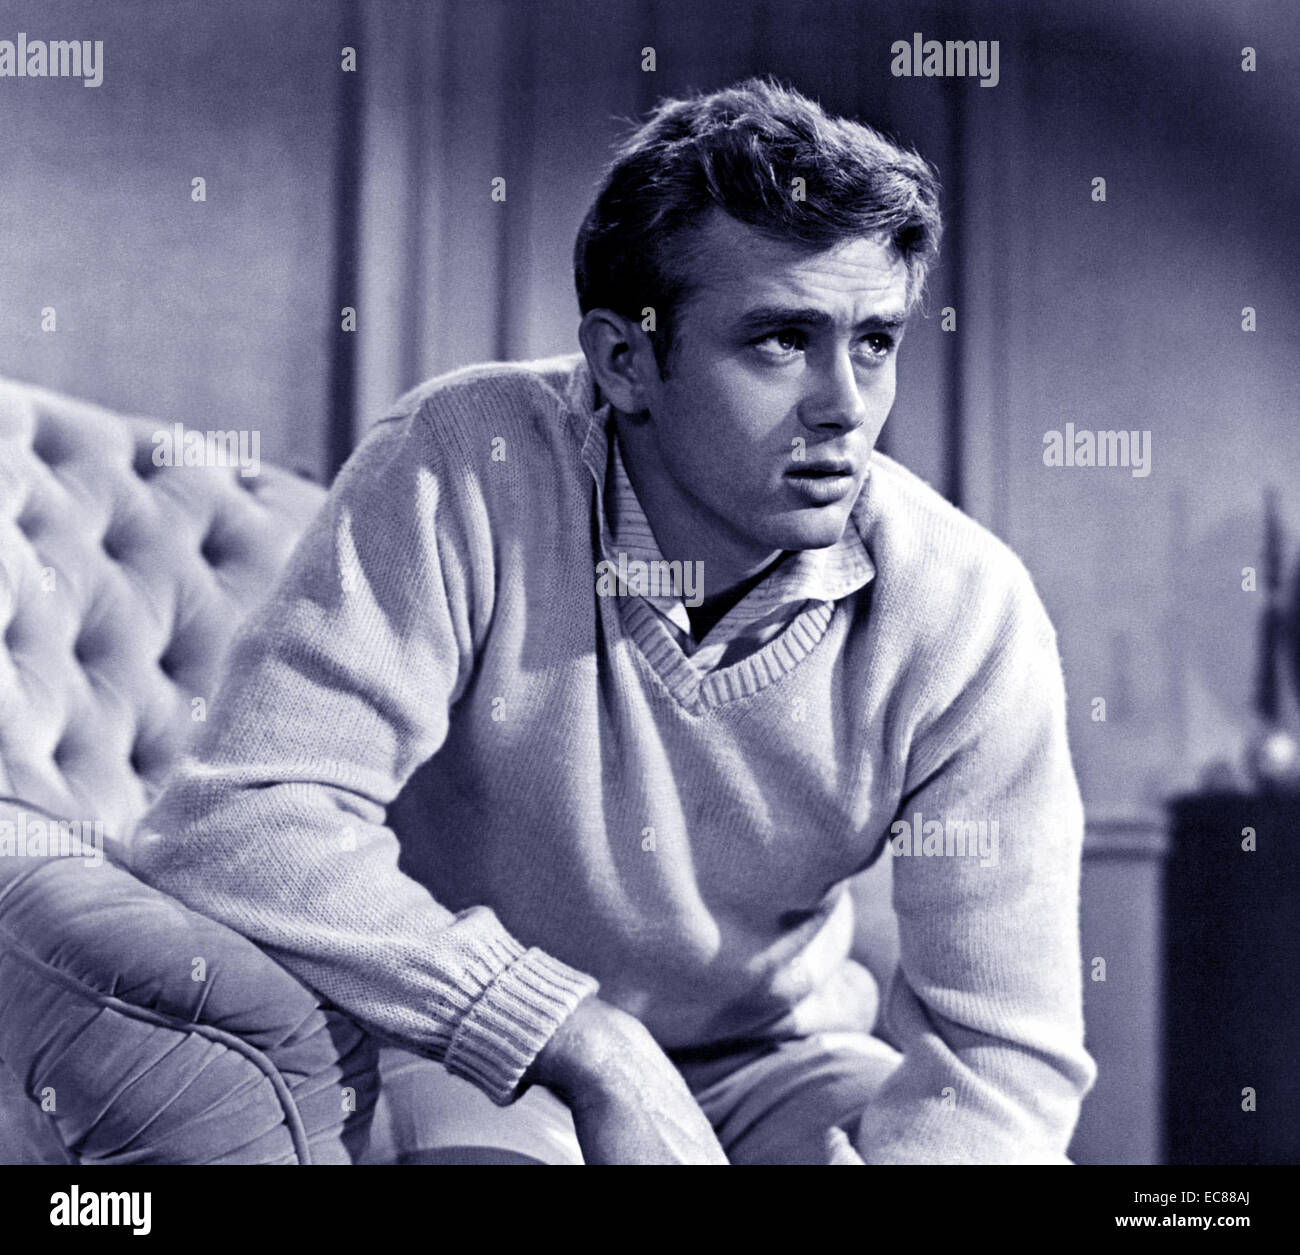 Photograph of James Byron Dean (1931-1955) American actor in the film 'East of Eden'. Dated 1955 - Stock Image